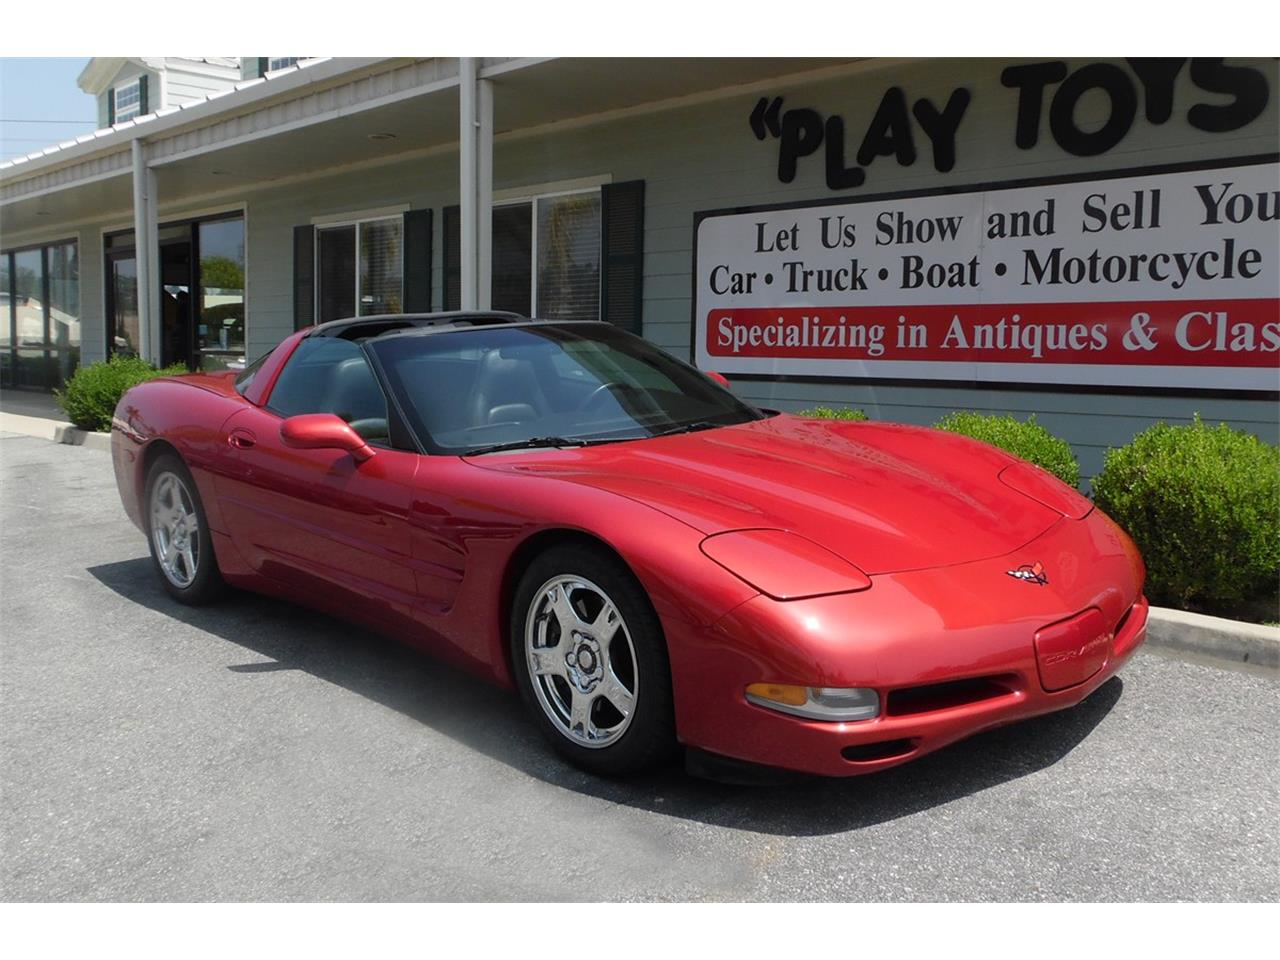 Large Picture of '97 Chevrolet Corvette located in California - $21,995.00 - QDLE